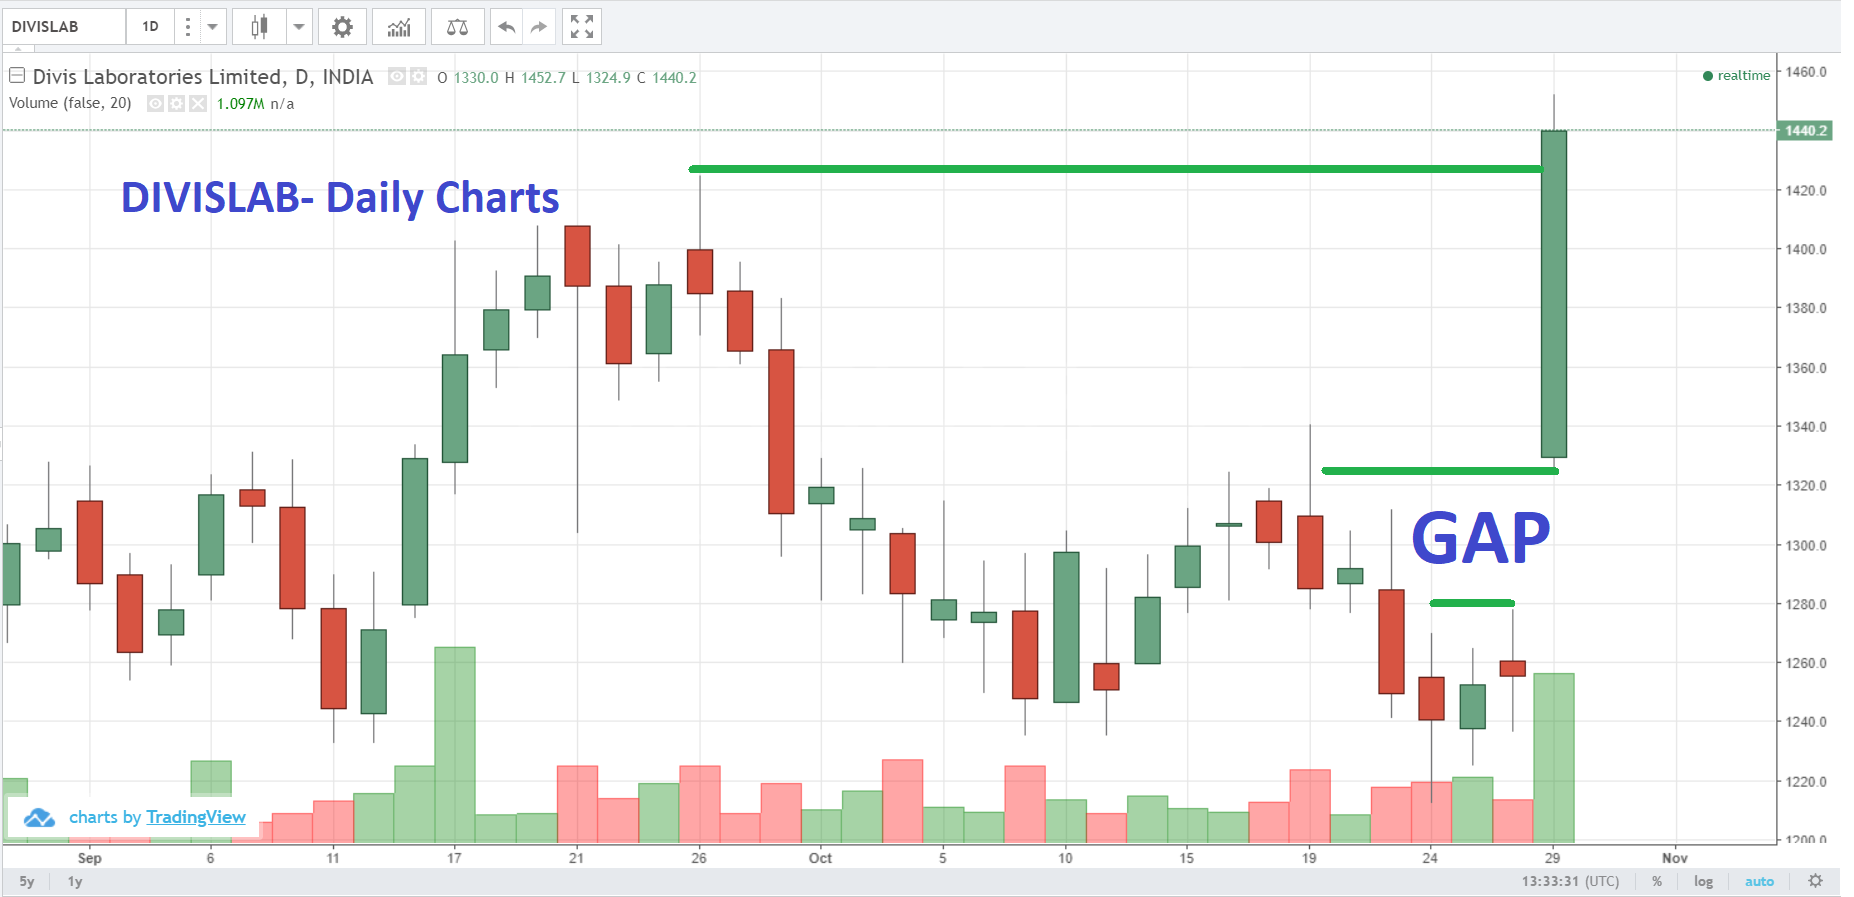 NIFTY Posts Best Gains In Over Two Weeks